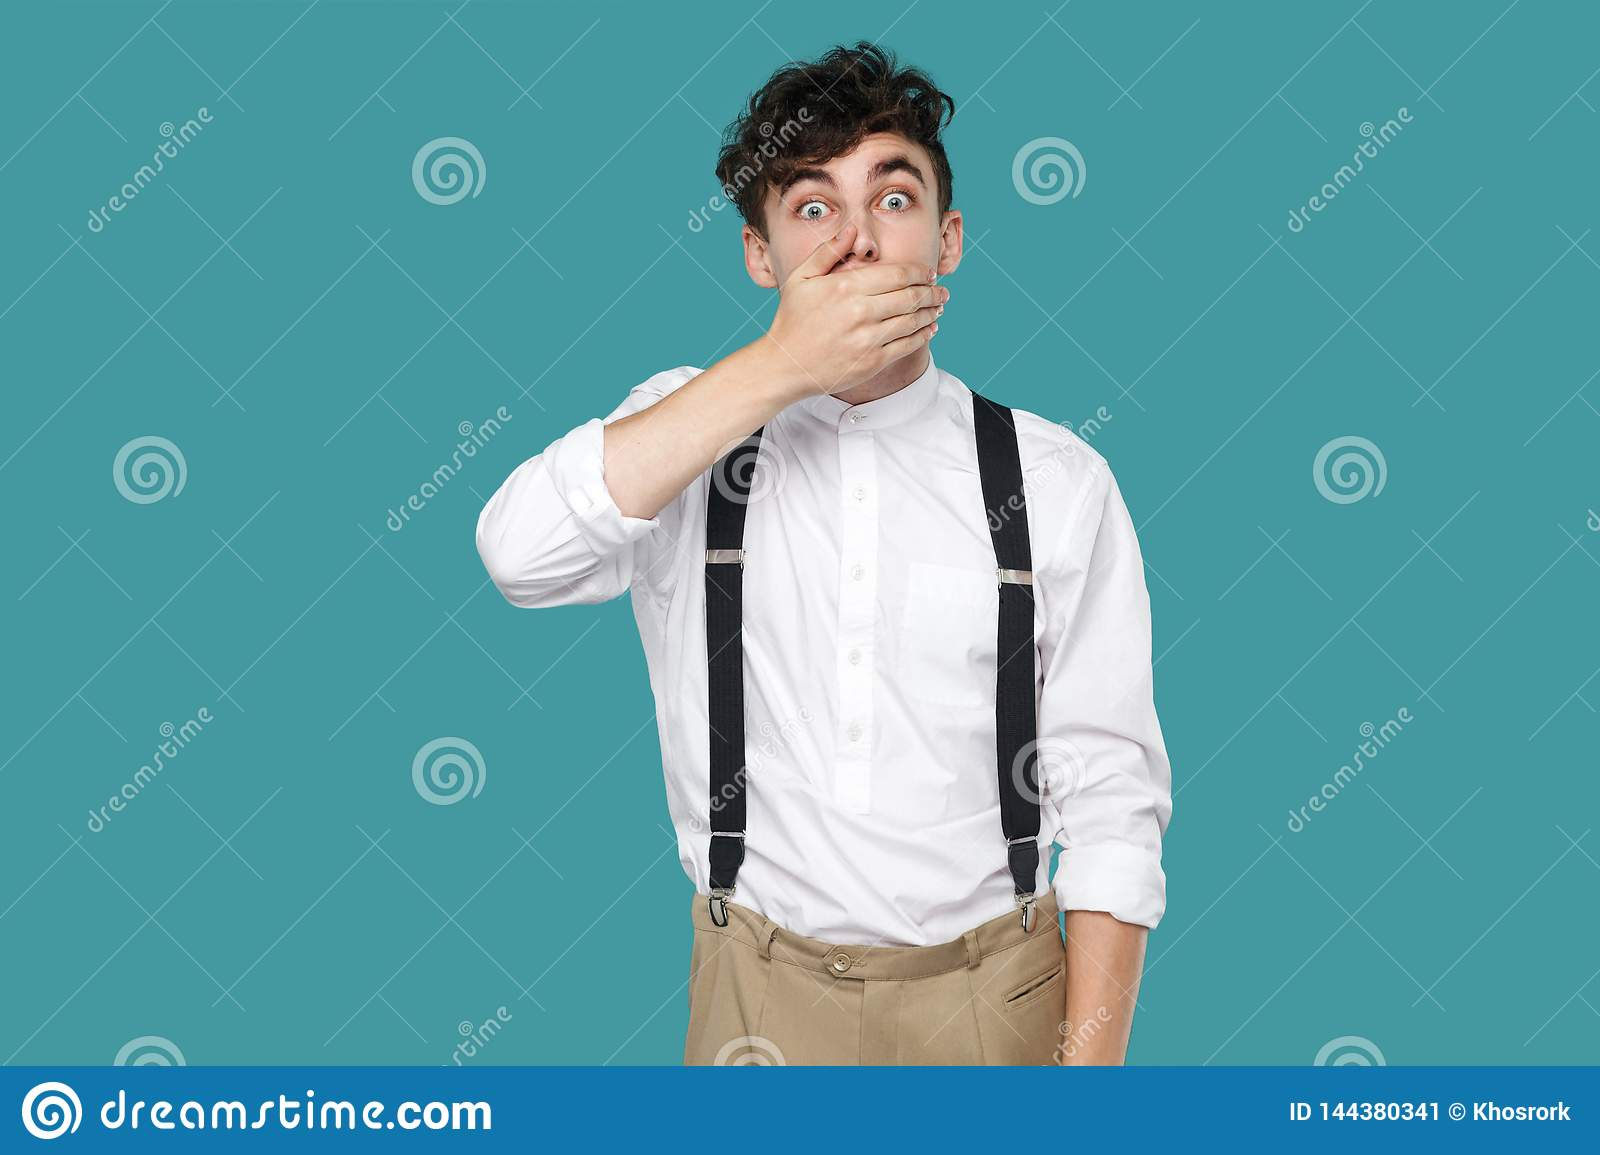 Shocked man covering his mouth, looking at camera with big eyes